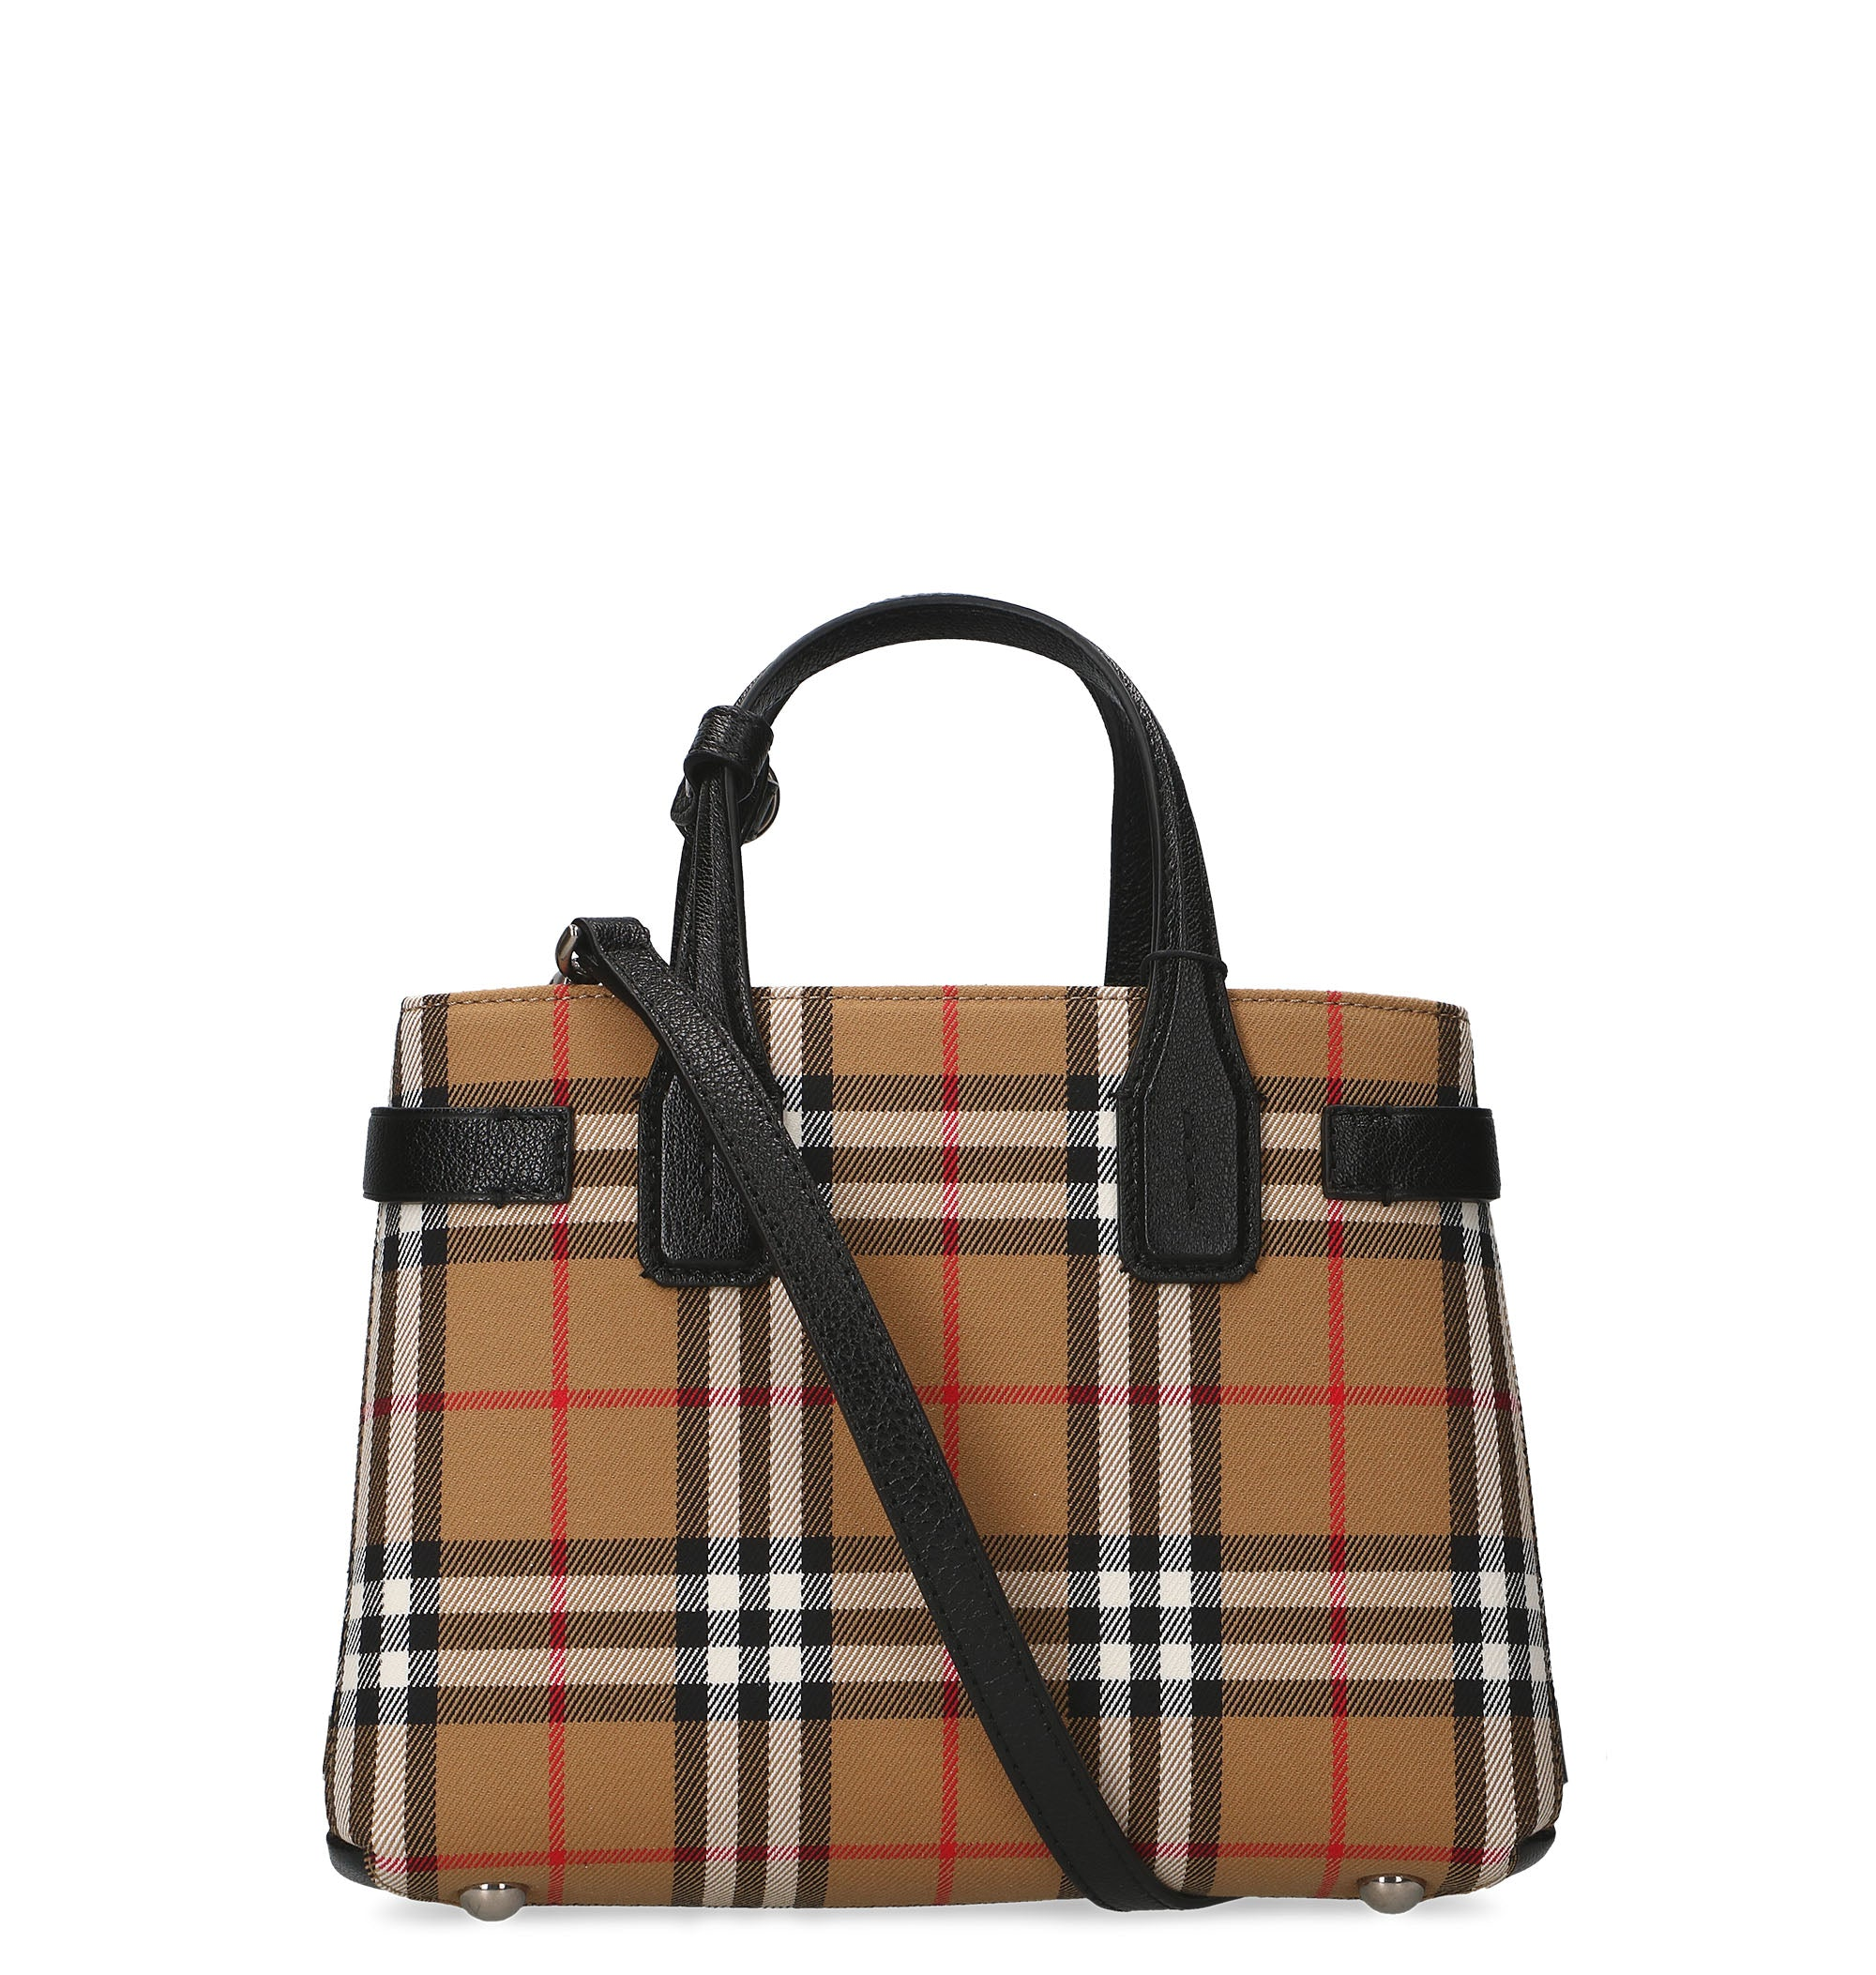 BURBERRY BURBERRY SMALL BANNER TARTAN TOTE BAG. Photo  CETTIRE fe7af5bd234cd